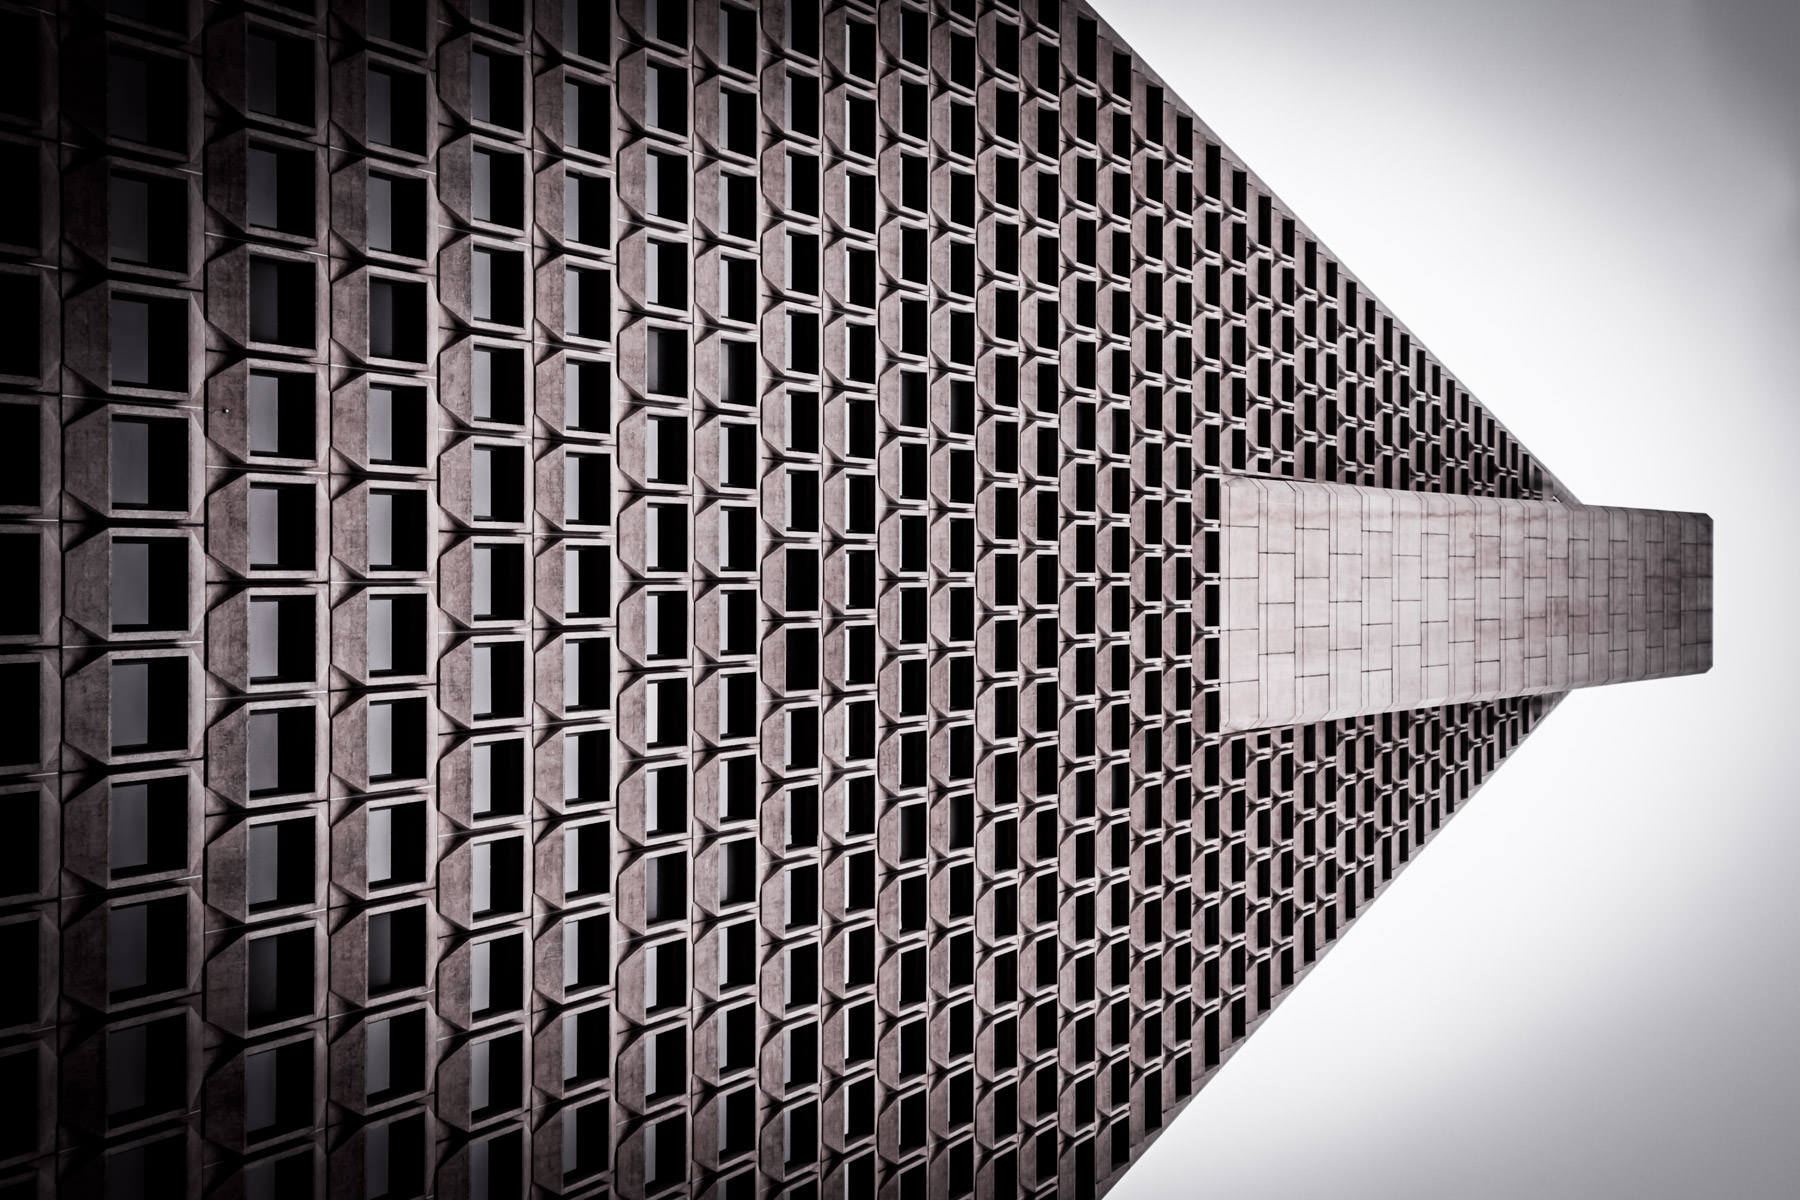 An abstracted study of the exterior of San Francisco's TransAmerica Pyramid as it rises into the overcast sky.